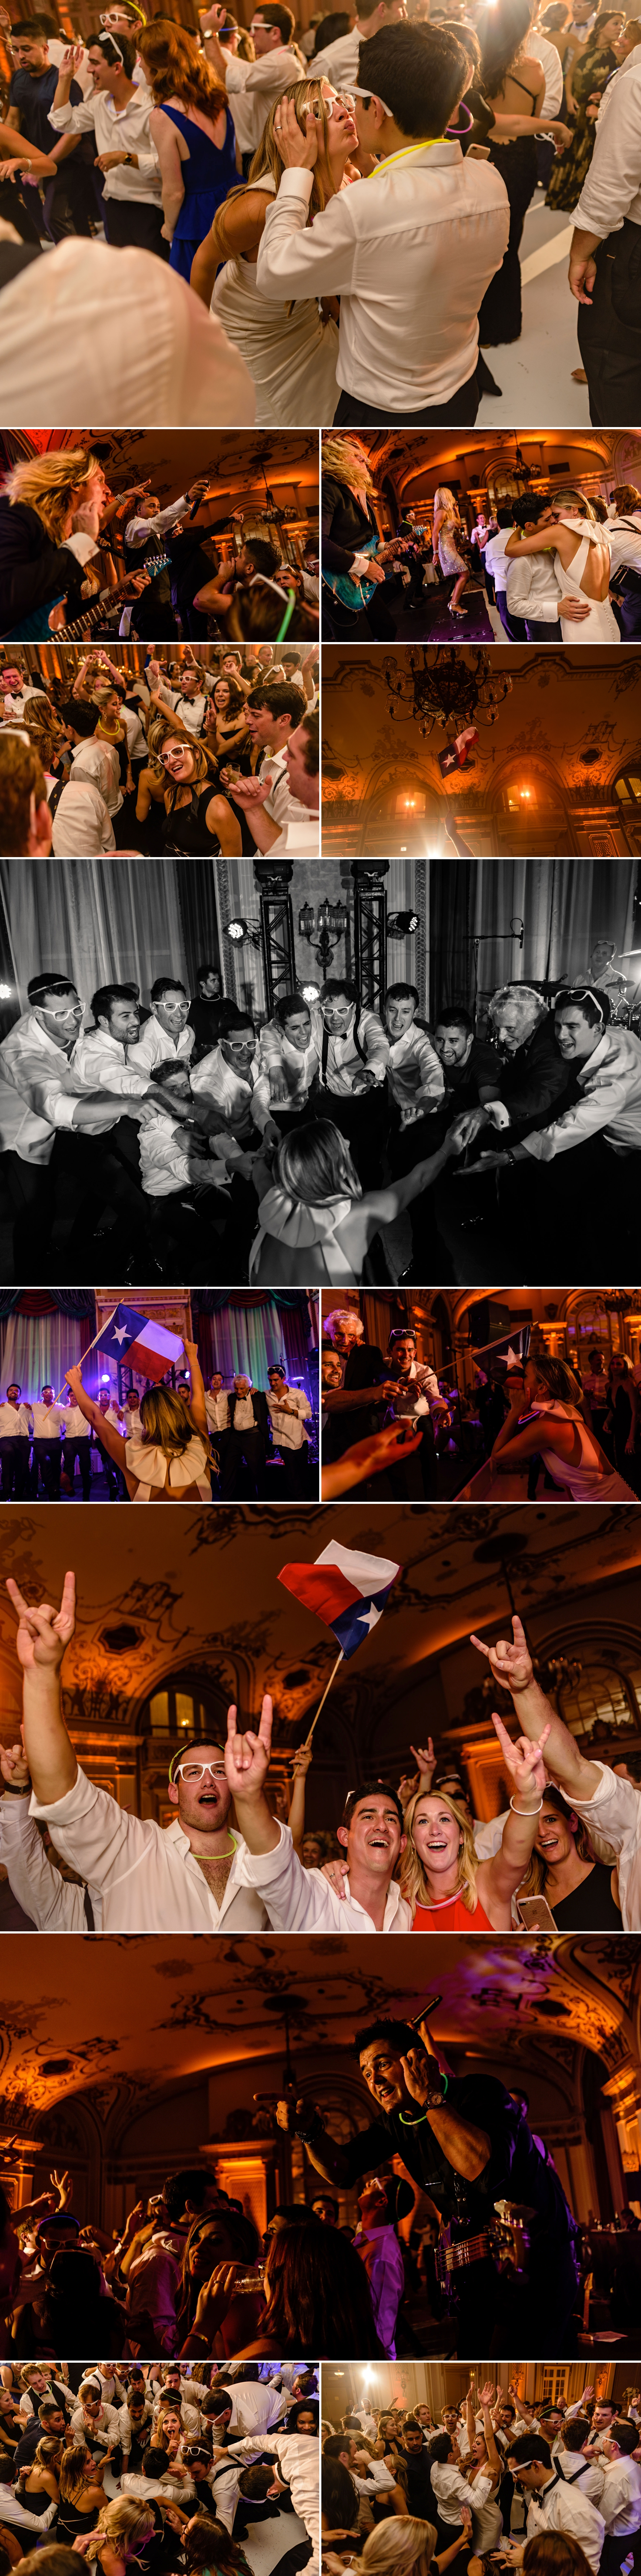 photos of candid moments on the dance floor during a jewish wedding at the chateau laurier wedding in ottawa ontario